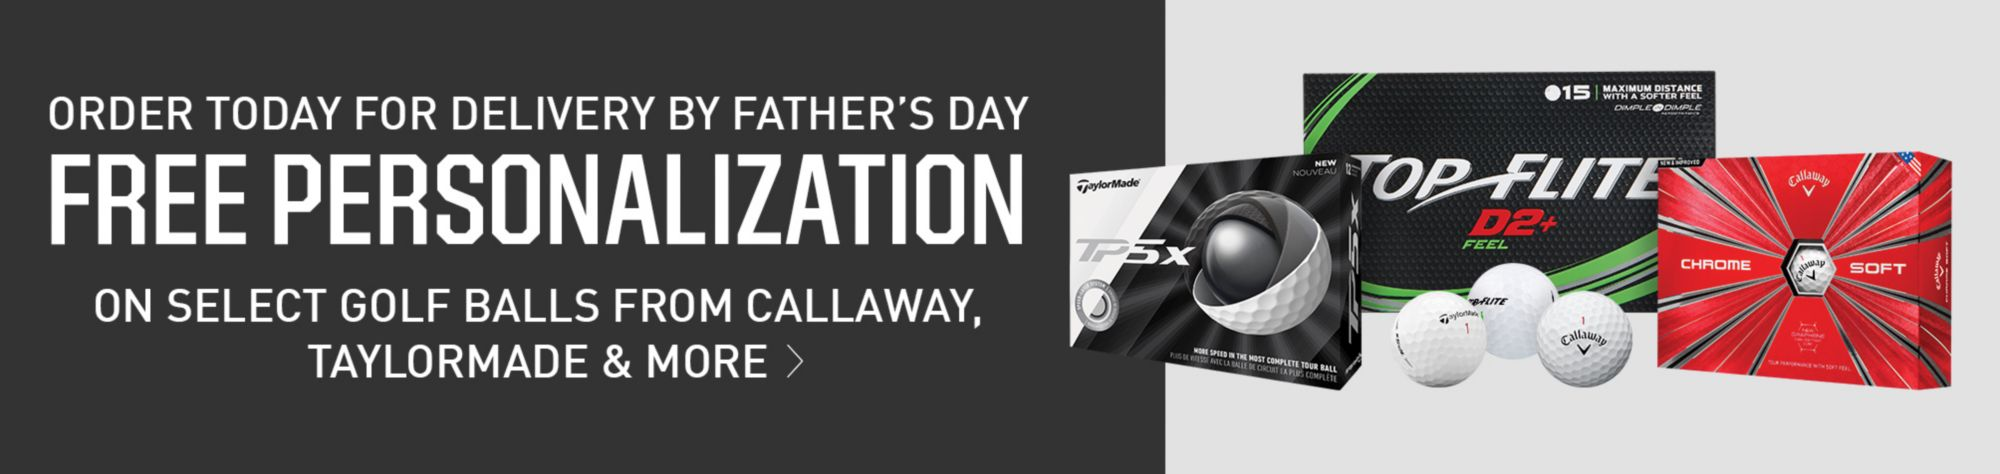 Order Today For Delivery By Father's Day - Free Personalization, on select golf balls from callaway, taylormade & more